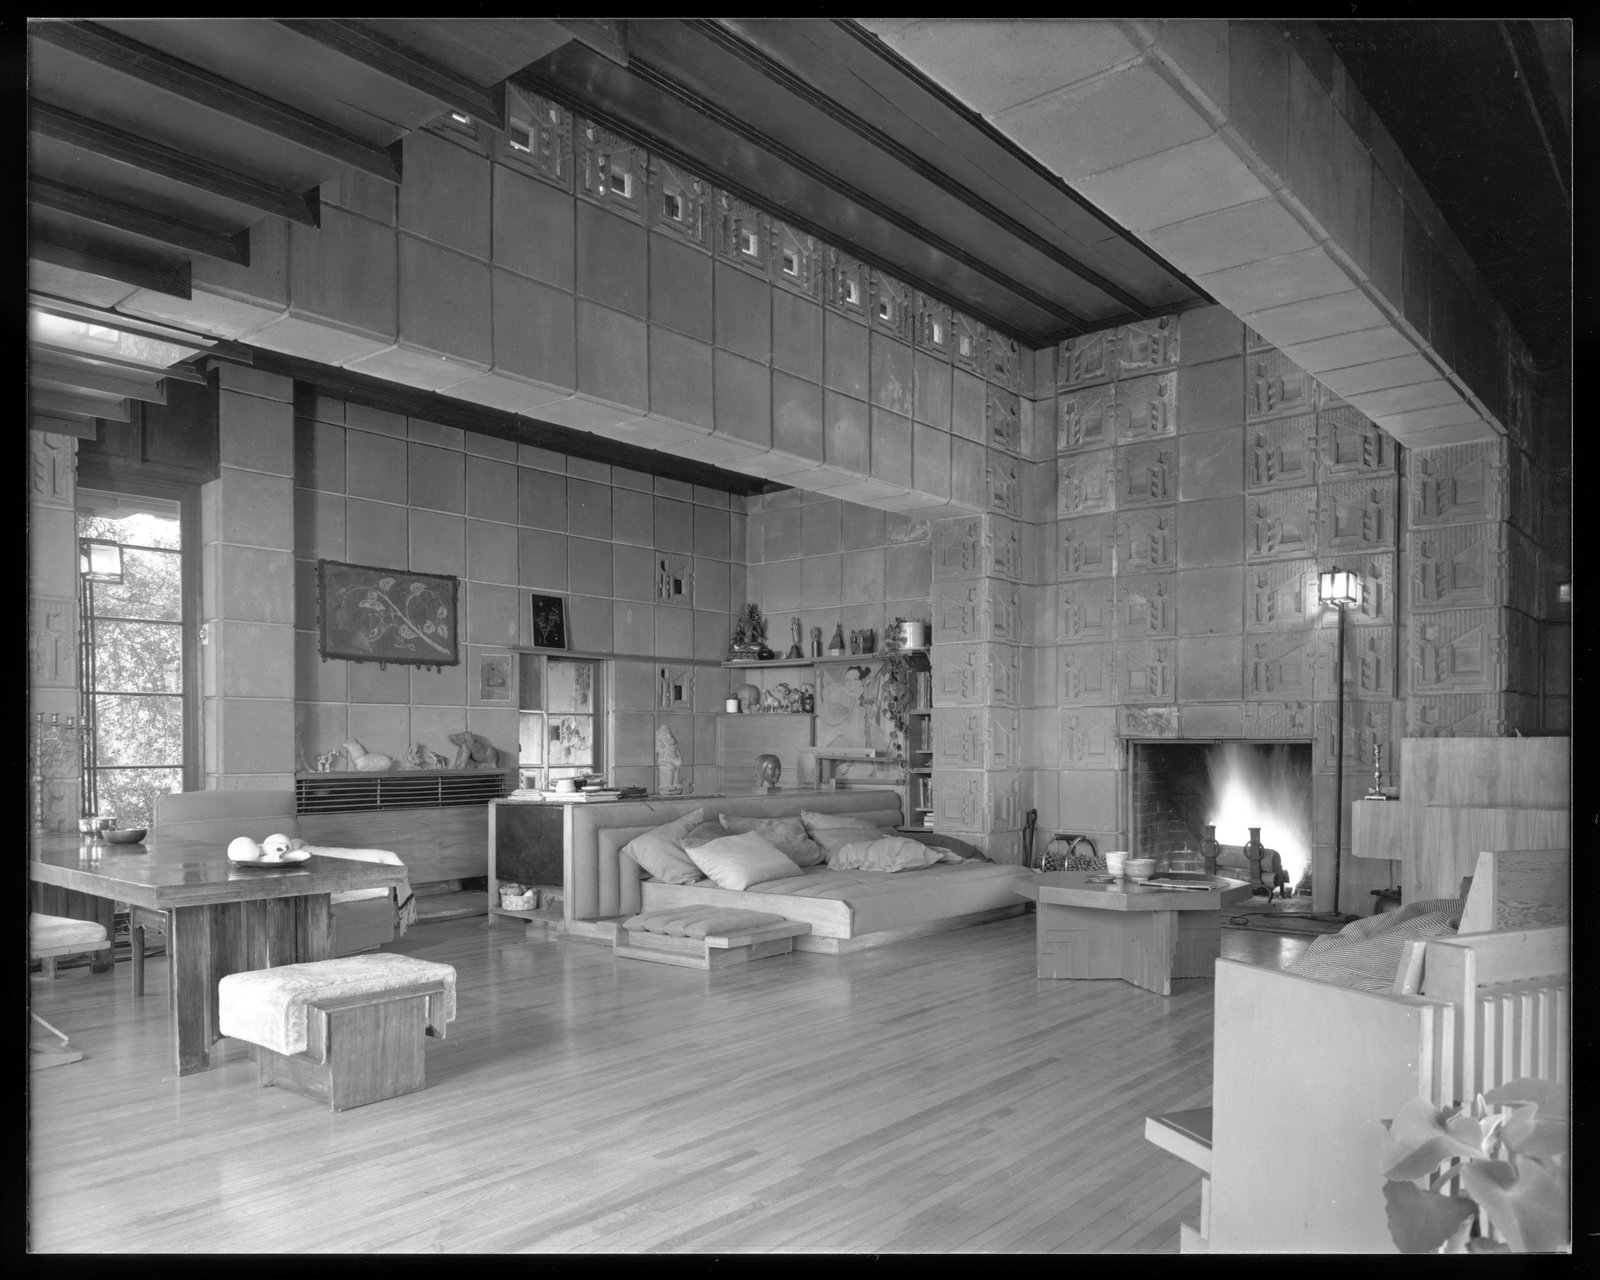 Thieves Stole $200k Worth of Pieces from Frank Lloyd Wright's Freeman House